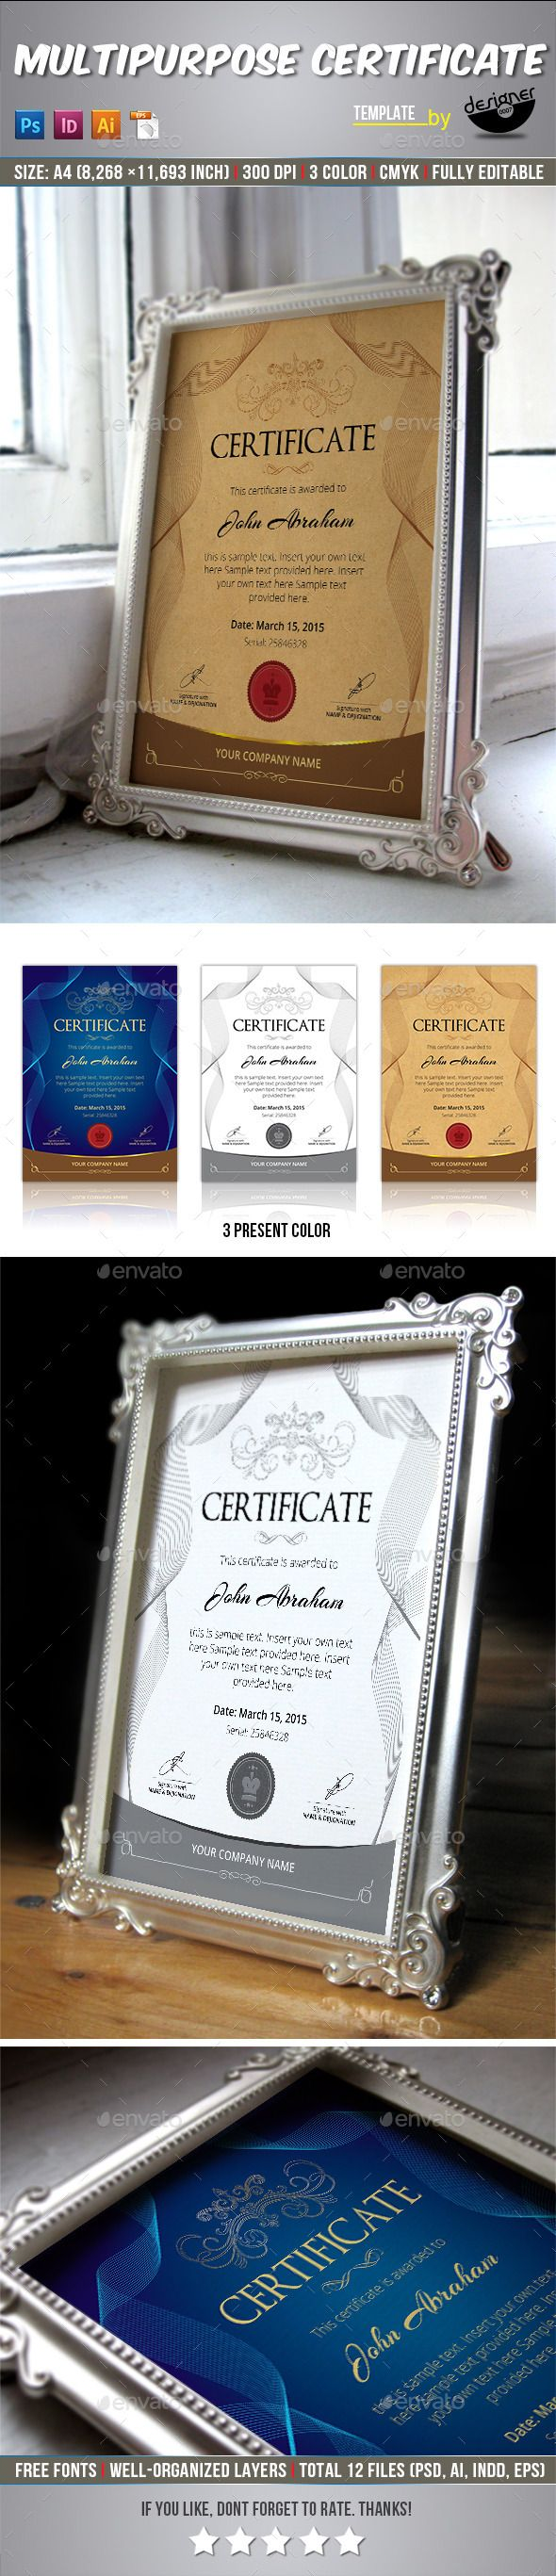 best ideas about certificate templates gift multipurpose certificate template